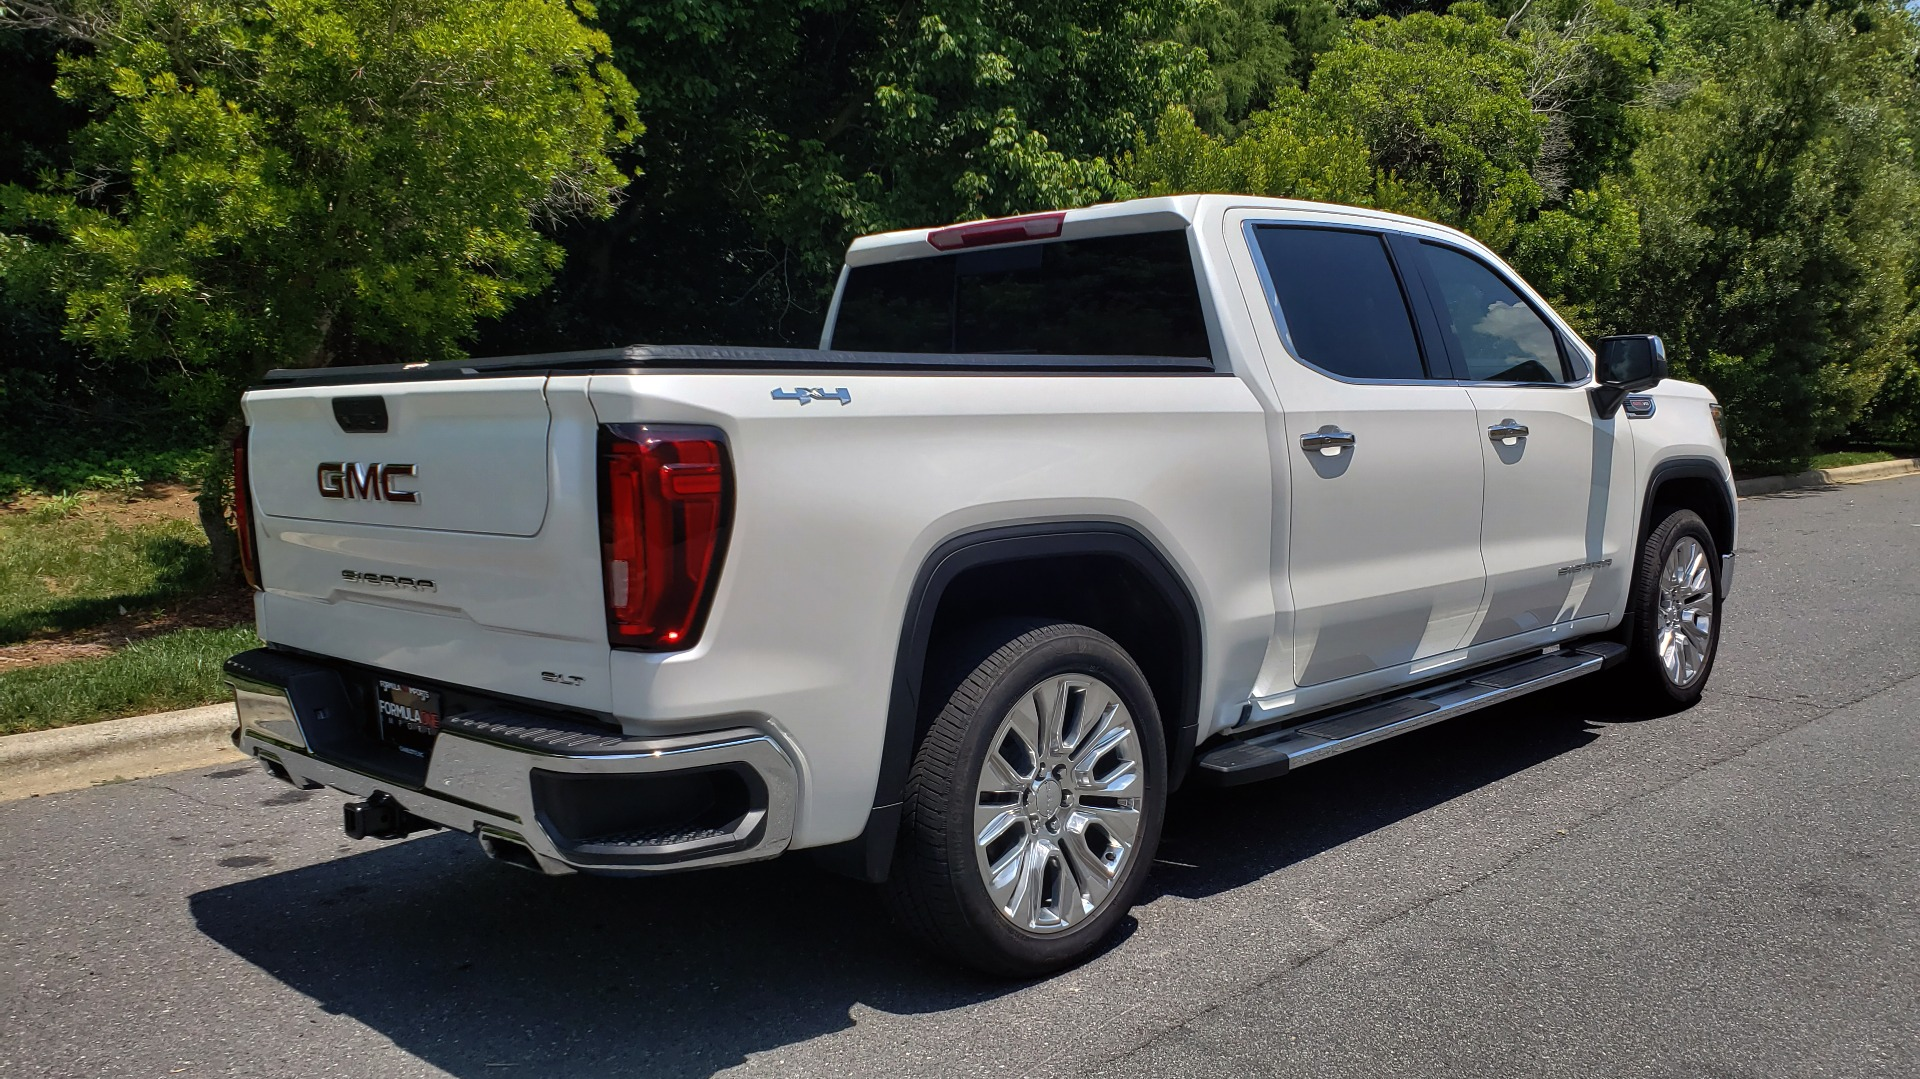 Used 2019 GMC SIERRA 1500 SLT 4WD CREWCAB / PREMIUM / 6.2L V8 / NAV / SUNROOF / VENT SEATS for sale Sold at Formula Imports in Charlotte NC 28227 6